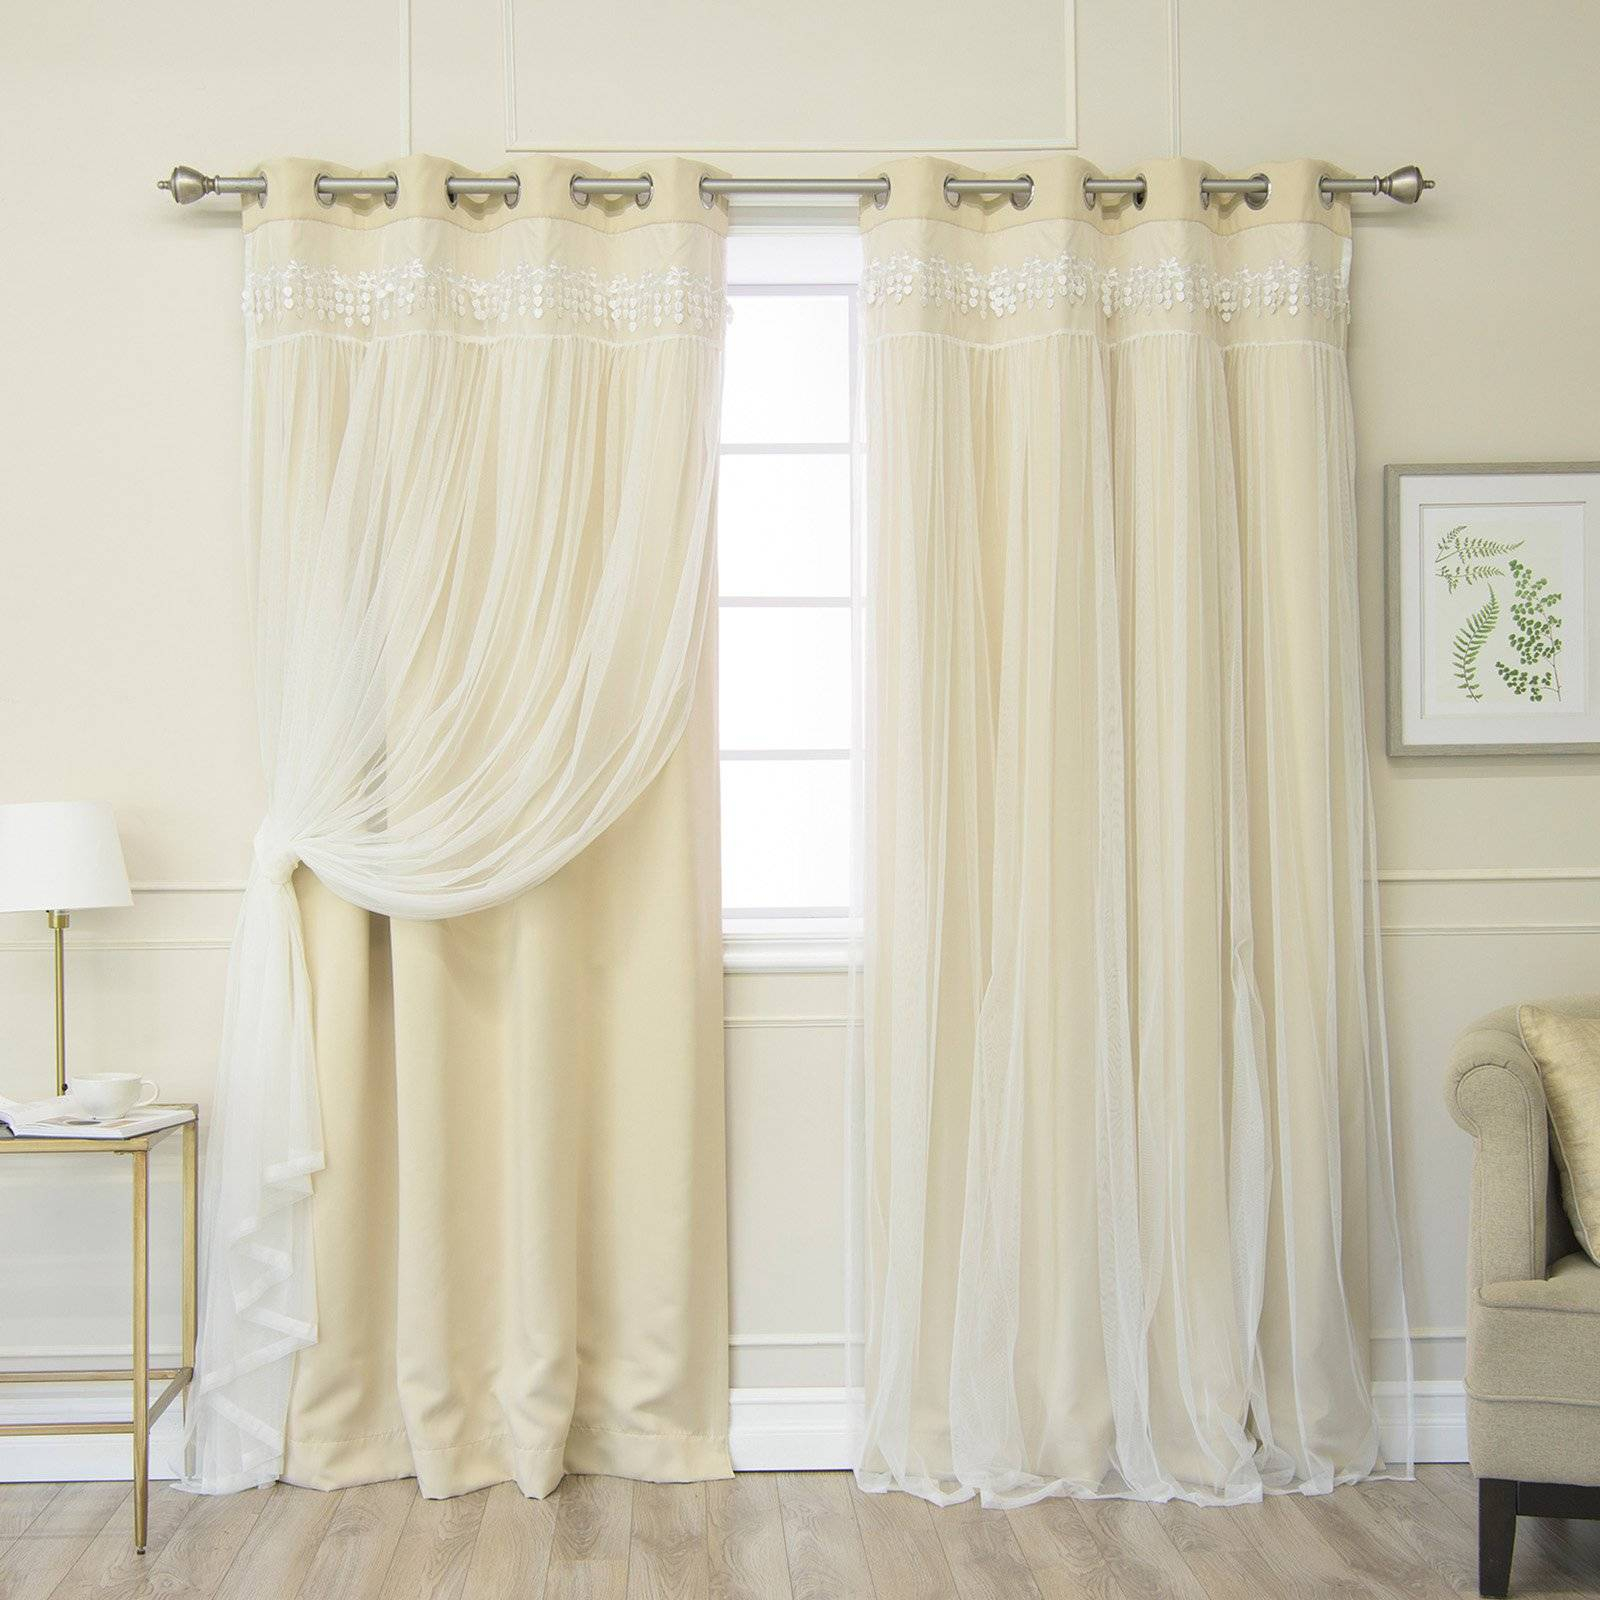 Pretty Country Lace Curtains Swags For Living Room Catalog Pertaining To Cottage Ivy Curtain Tiers (View 17 of 20)